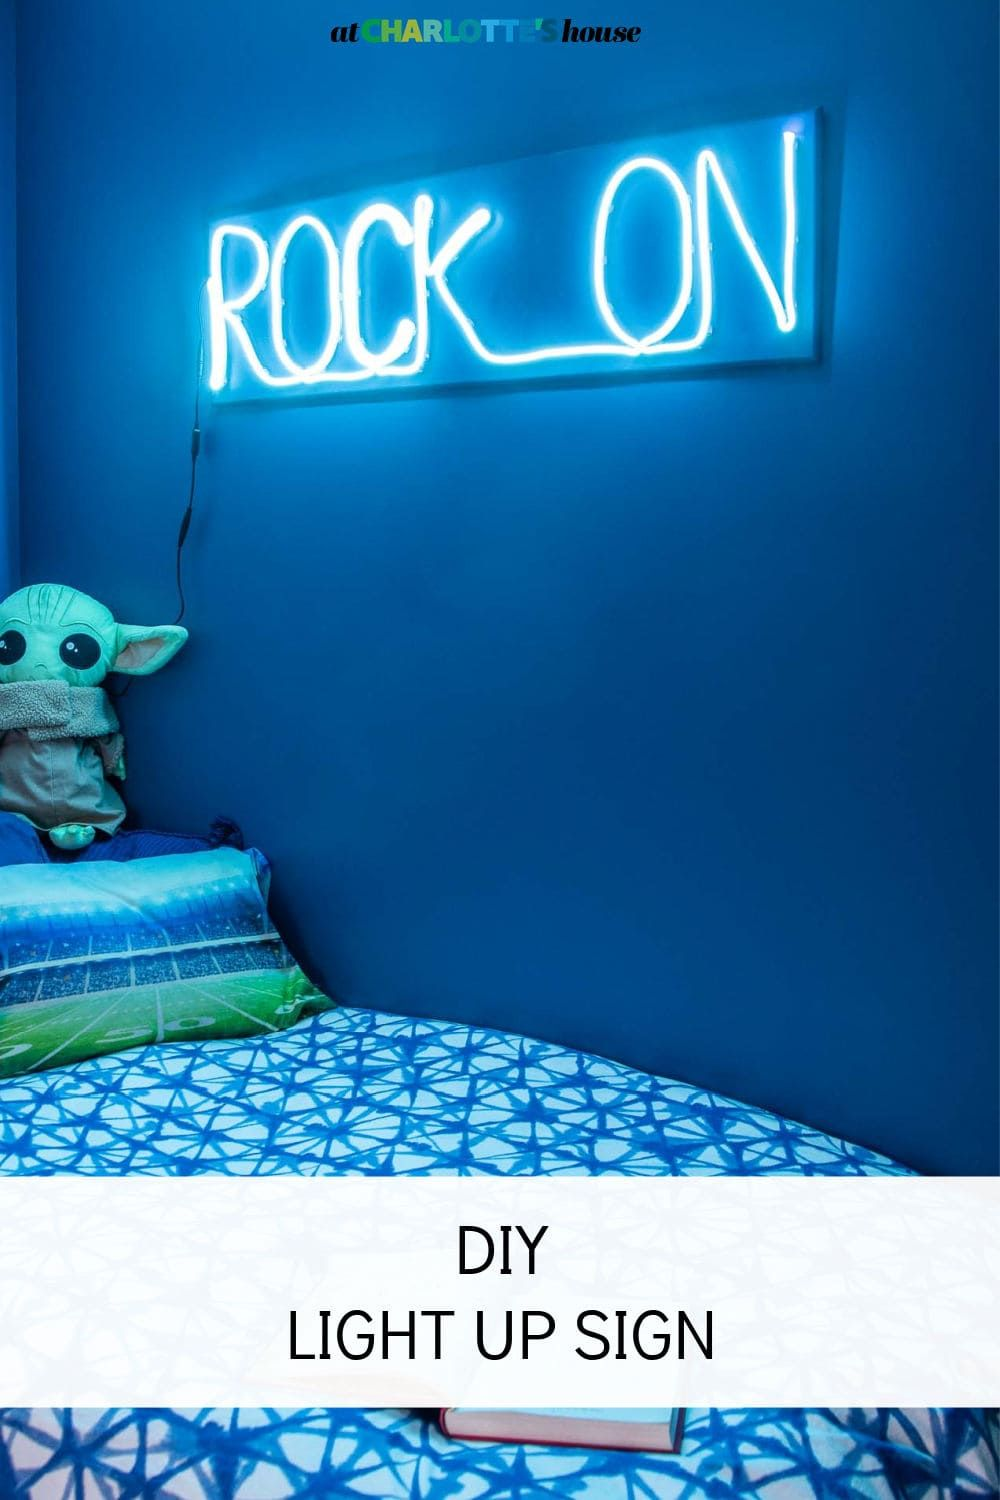 I made this custom DIY neon sign for my son's room and he loves it! A great budget solution for your own light up statement.